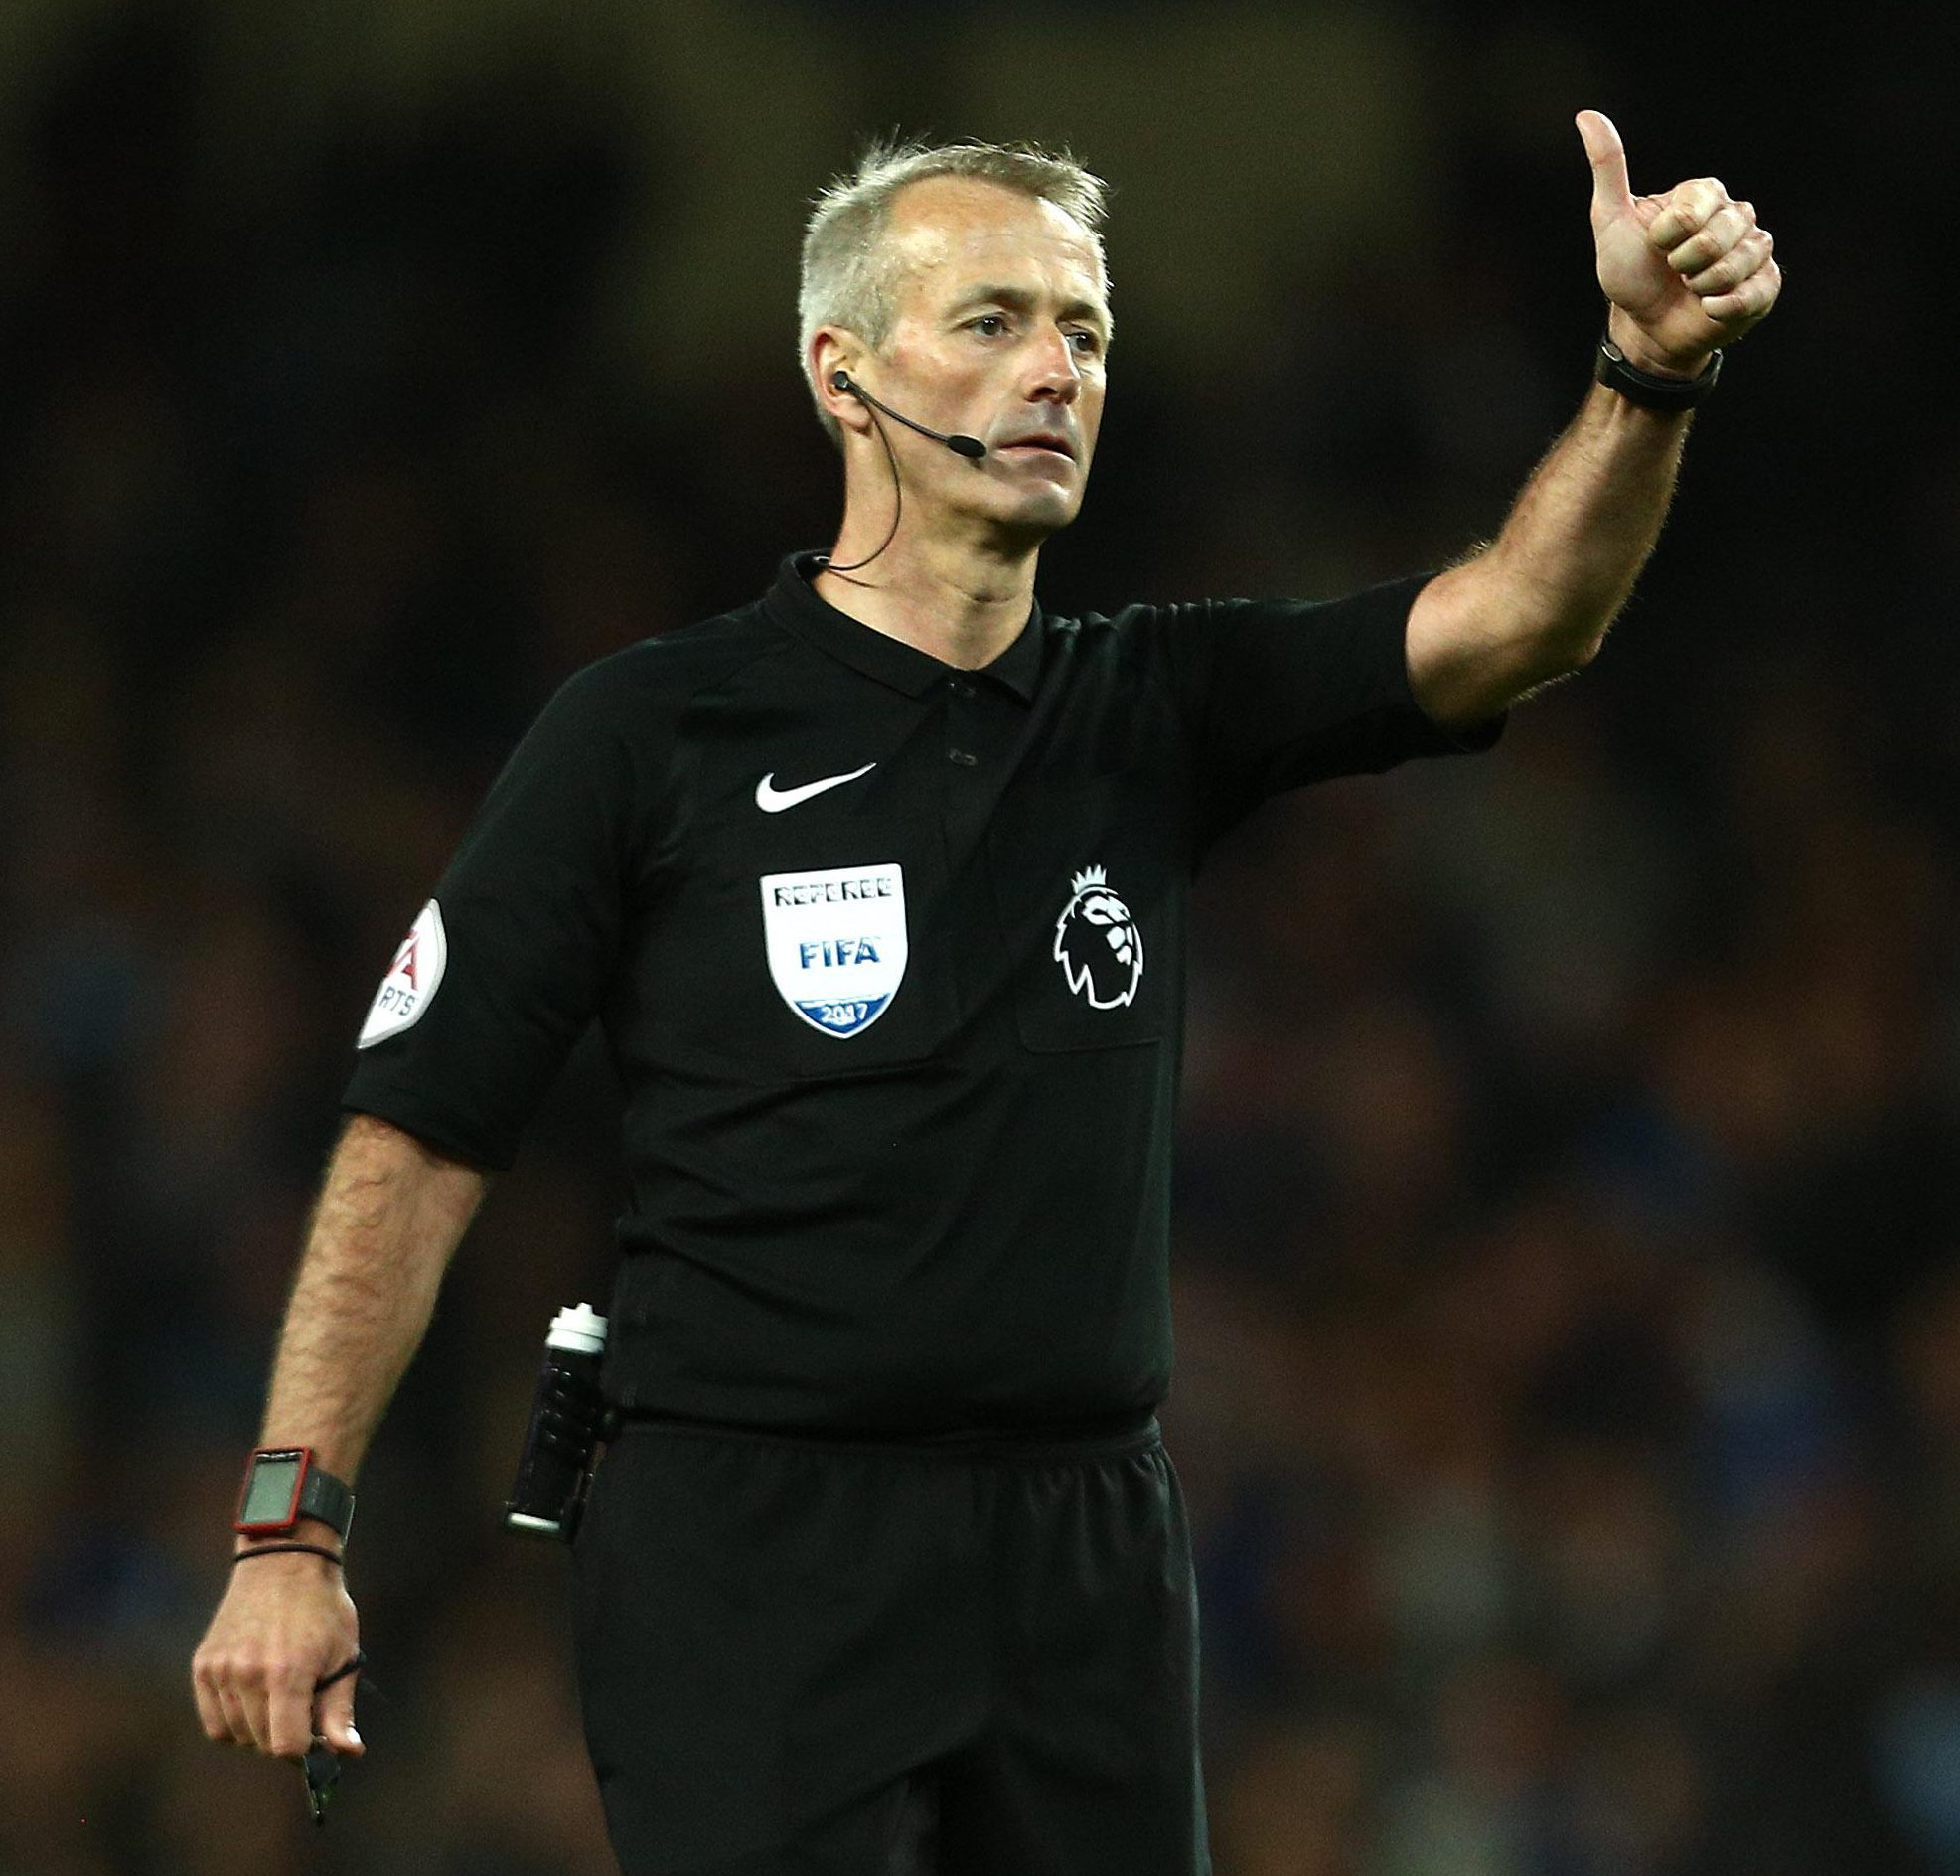 Englishman Martin Atkinson has refereed Champions League matches since 2008-09